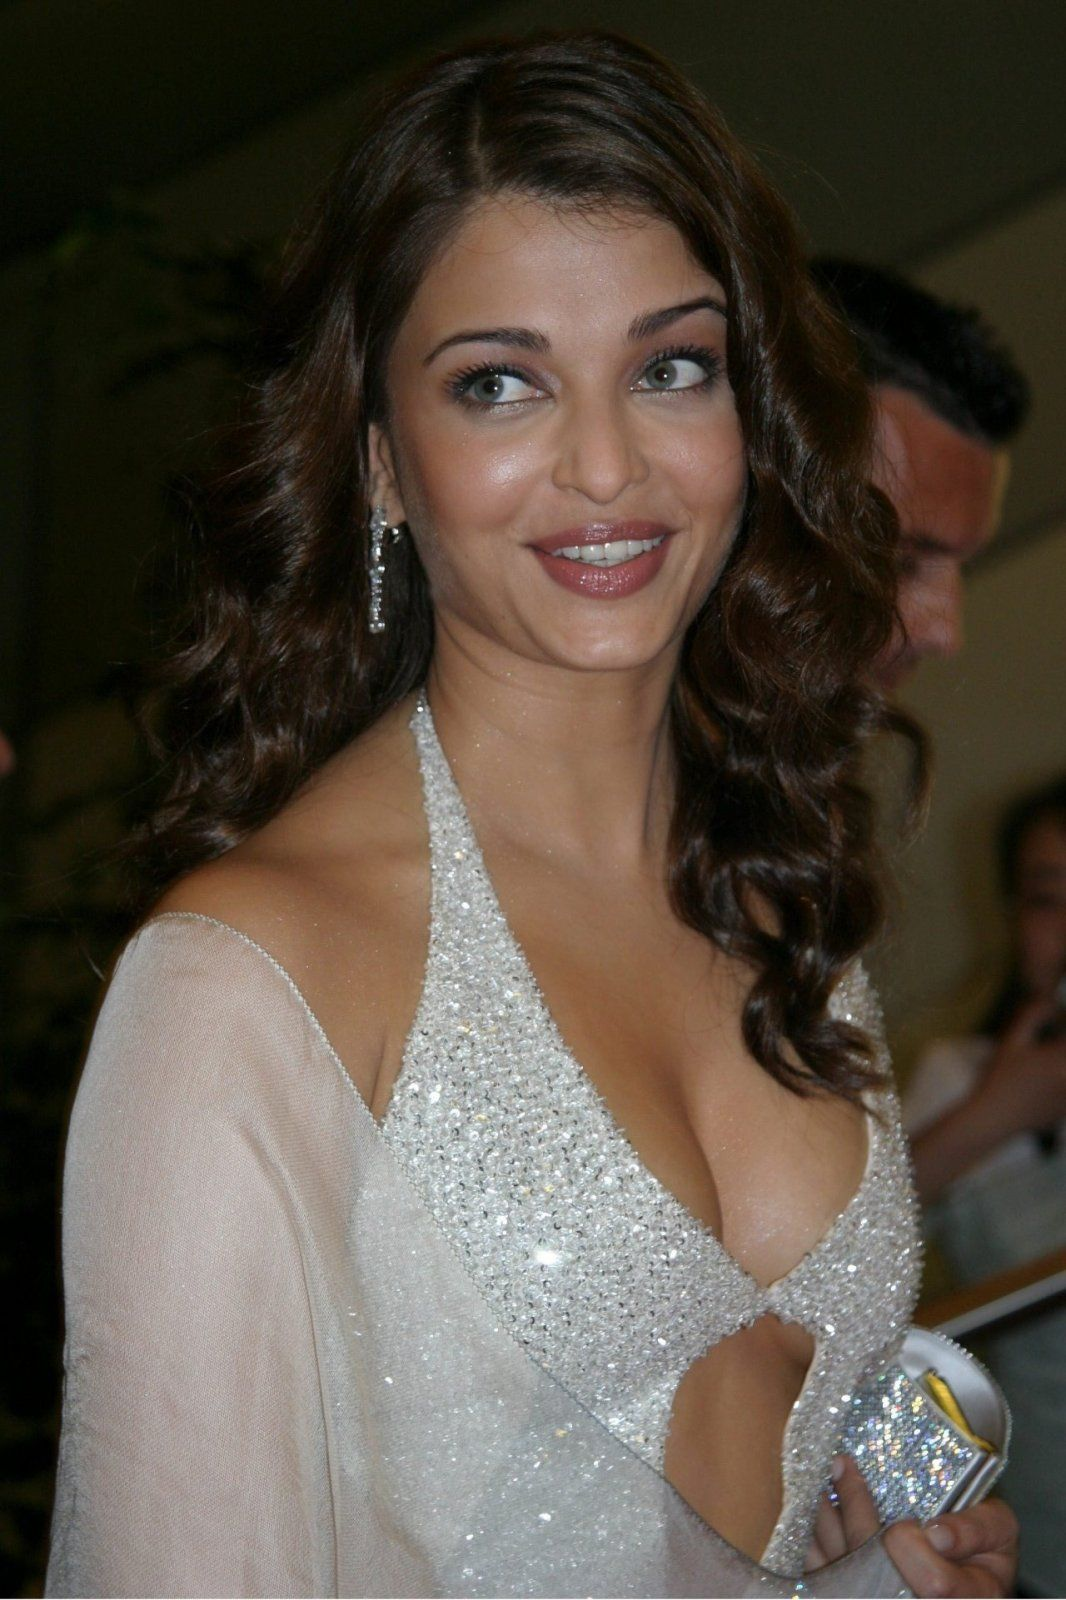 http://3.bp.blogspot.com/_83miS7TrWDY/TGB622ekEmI/AAAAAAAABEg/FPQKdM0i-PU/s1600/Aishwarya+Rai+without+clothes+and+without+makeup,+How+she+looks4.jpg